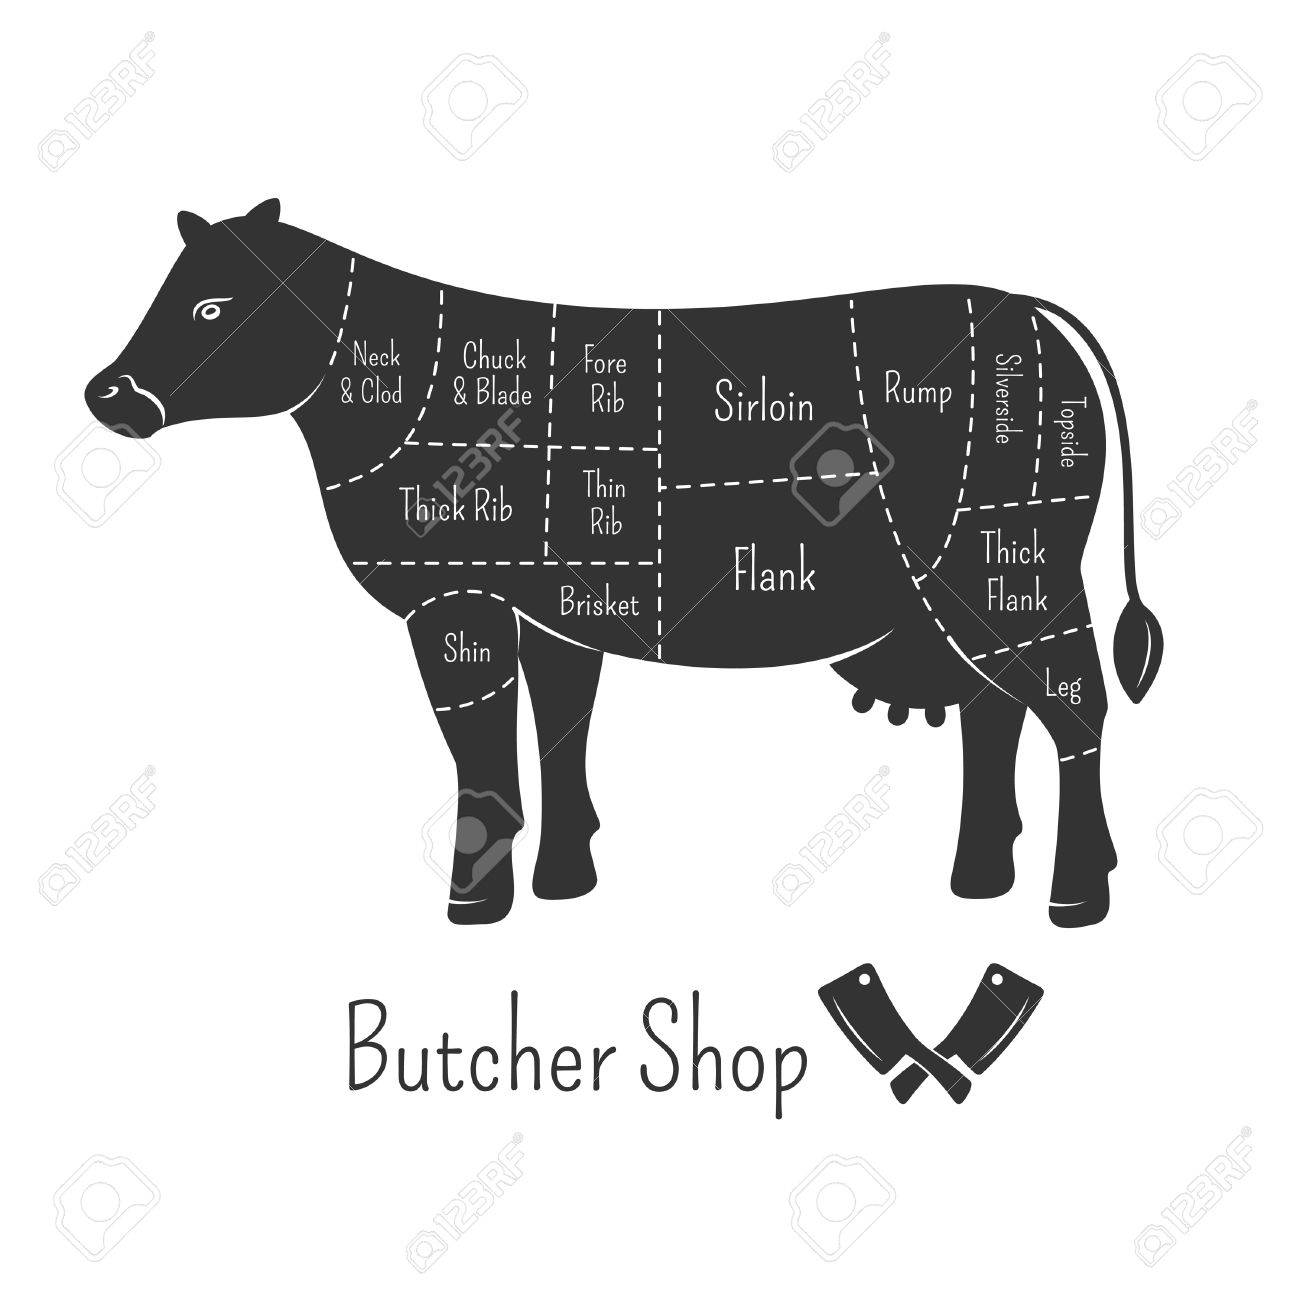 British cuts of beef diagram and butcher shop design royalty free british cuts of beef diagram and butcher shop design stock vector 39793831 pooptronica